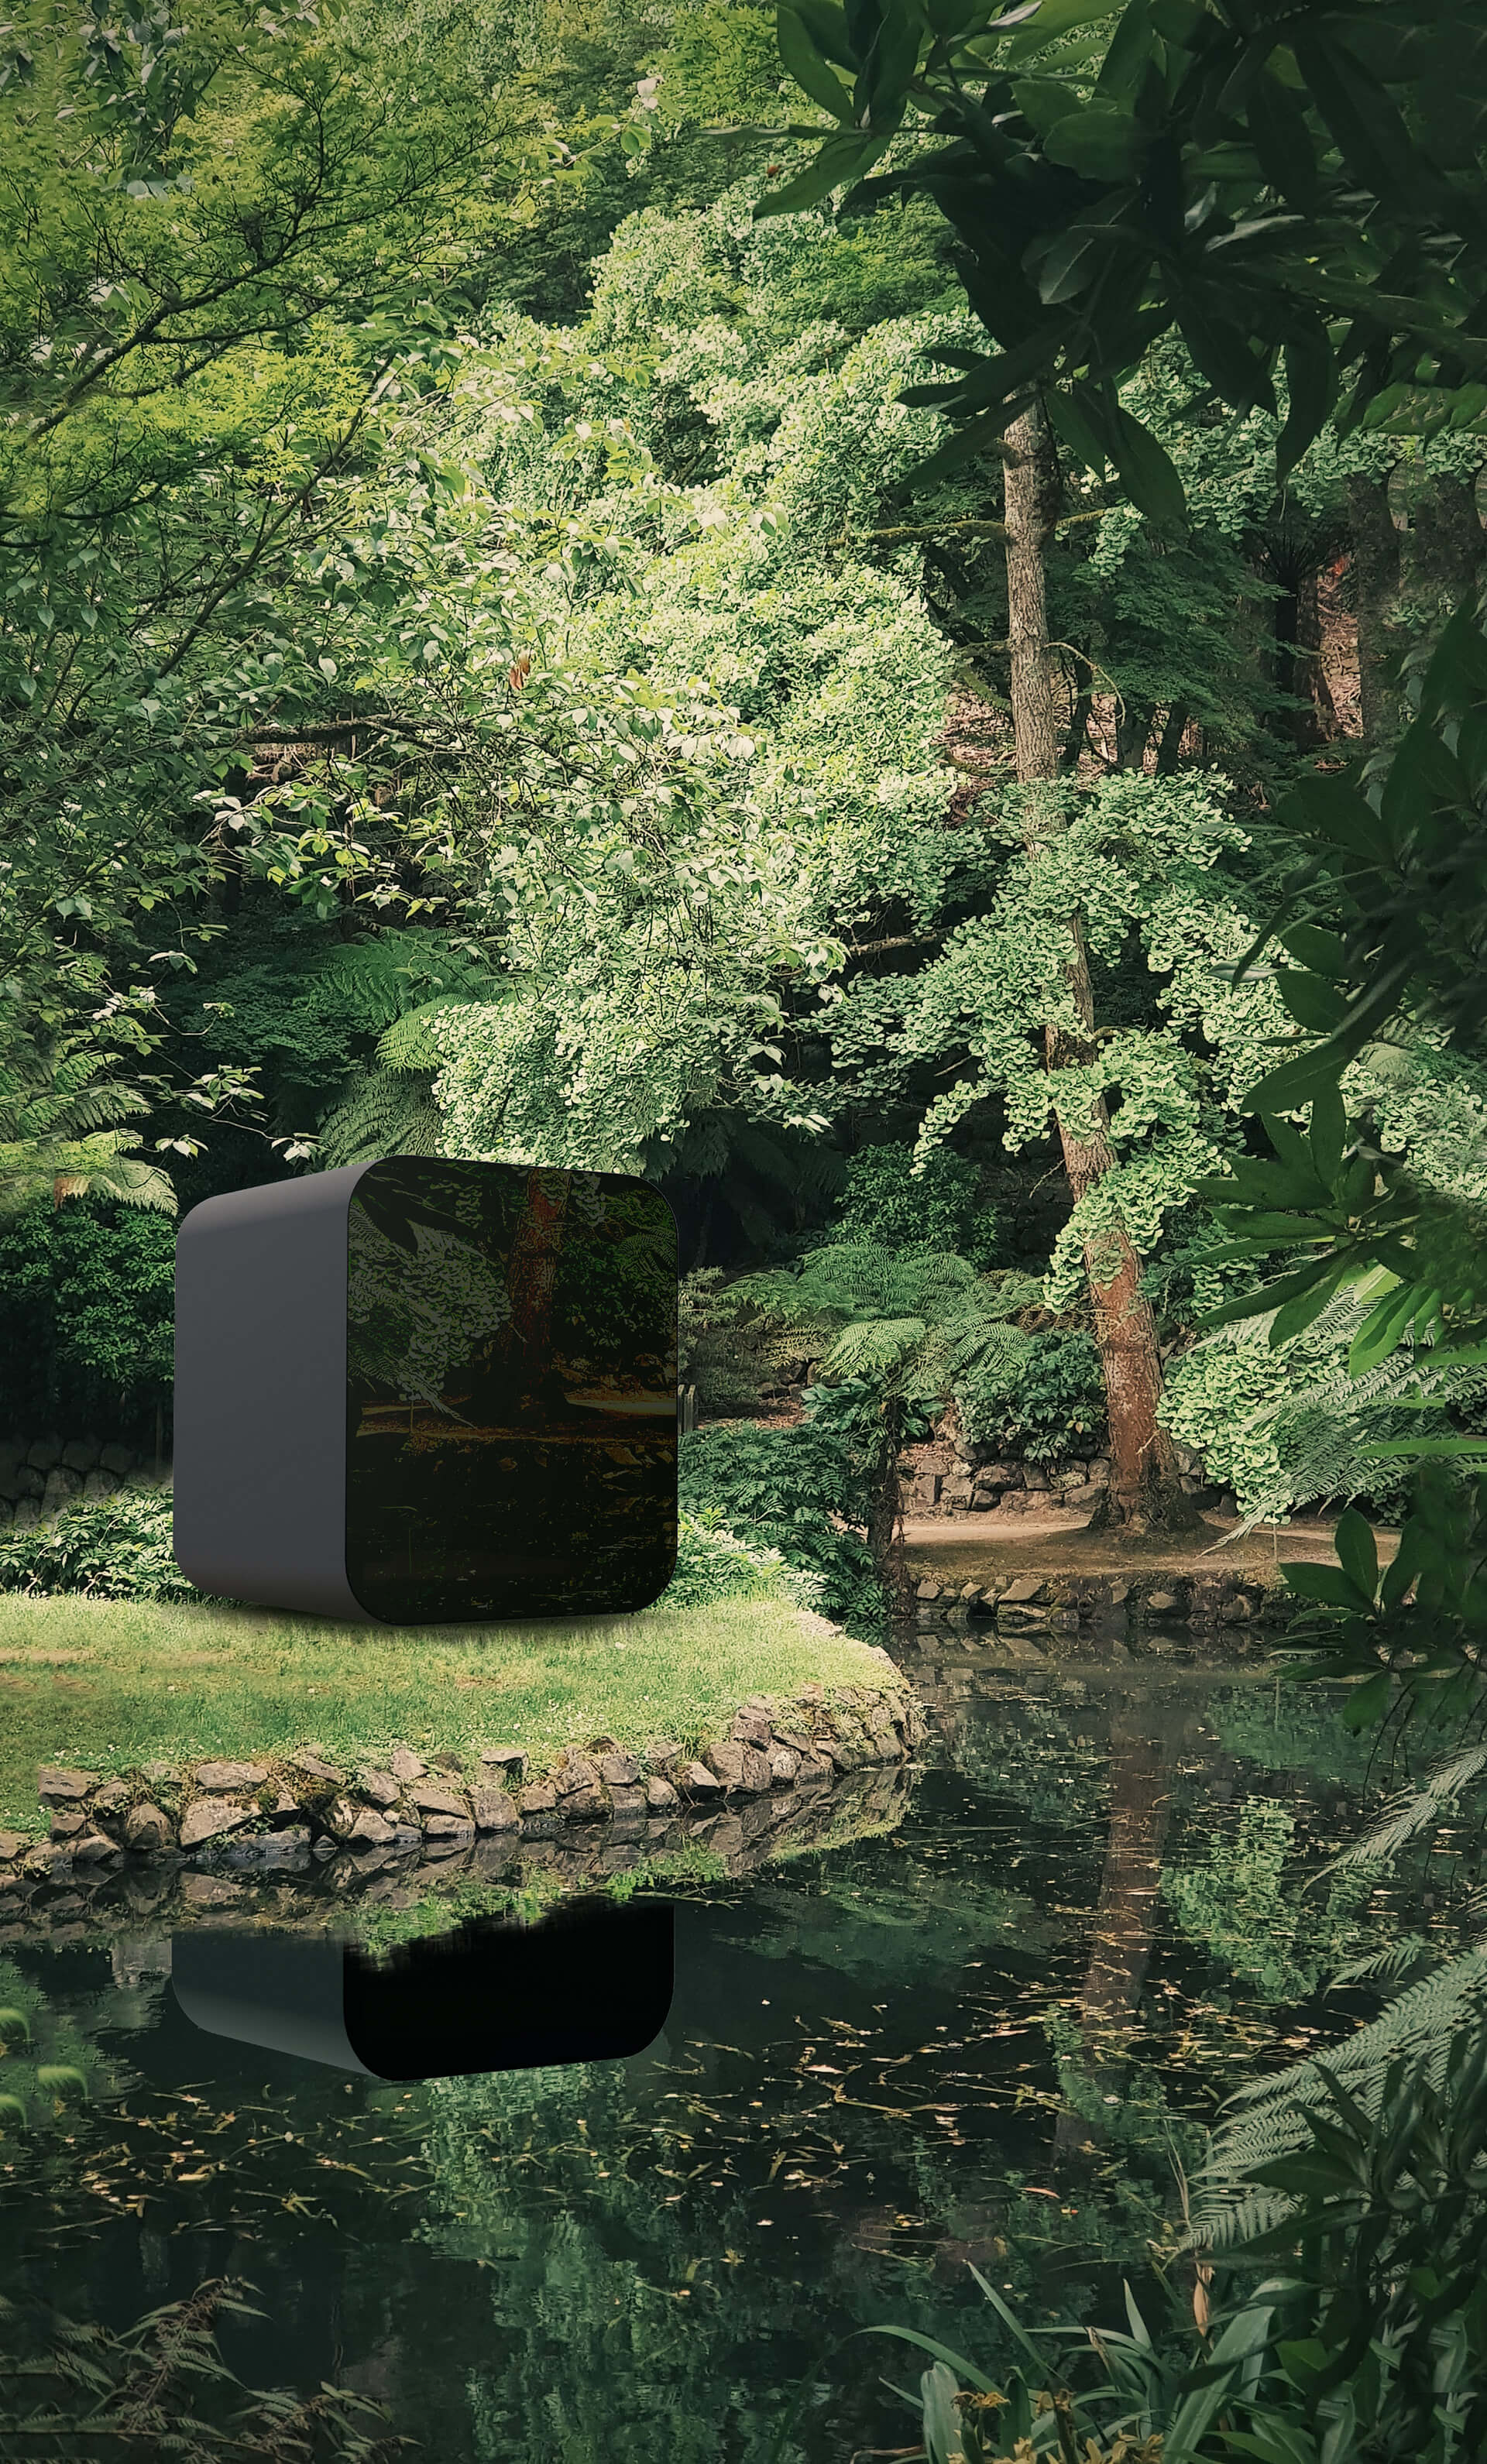 The Studypod seeks to improve productivity in working by allowing users to visually engage with nature | Studypod | Livit | STIRworld